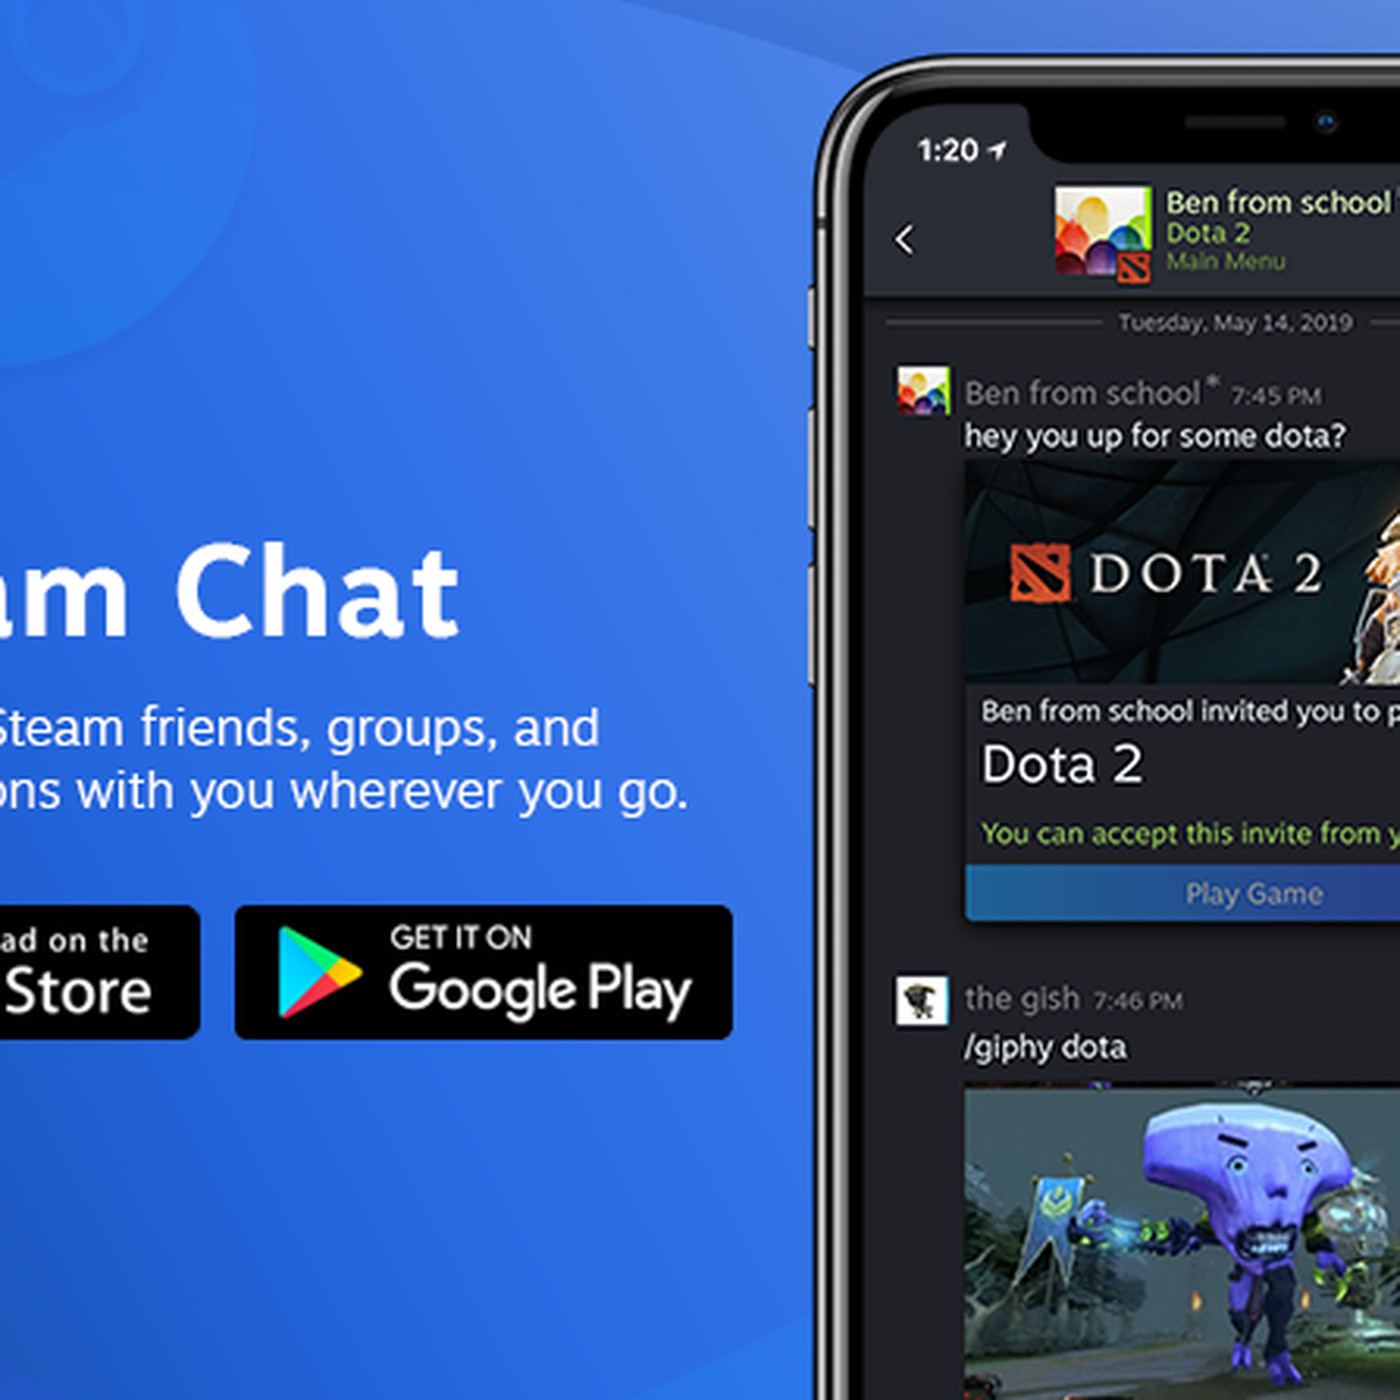 theverge.com - Sam Byford - Valve releases Steam Chat app for iOS and Android